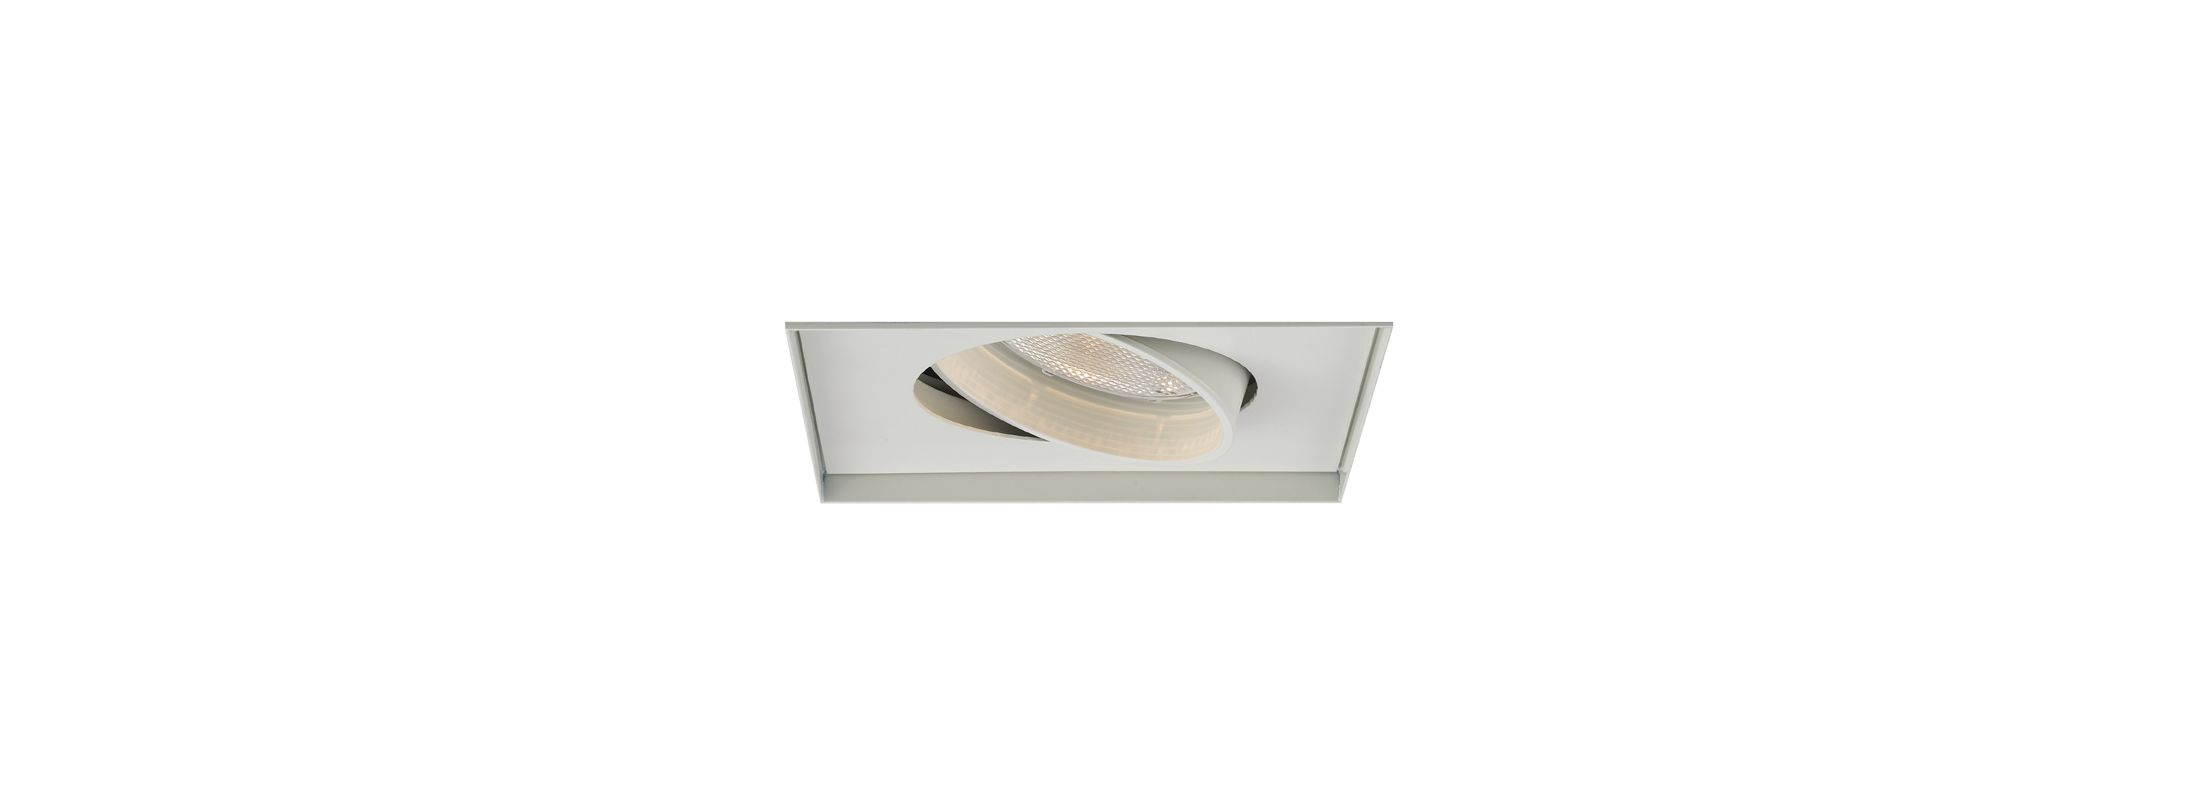 "WAC Lighting MT-130TL 6"" Multiple Spot Recessed Light Adjustable Trim"